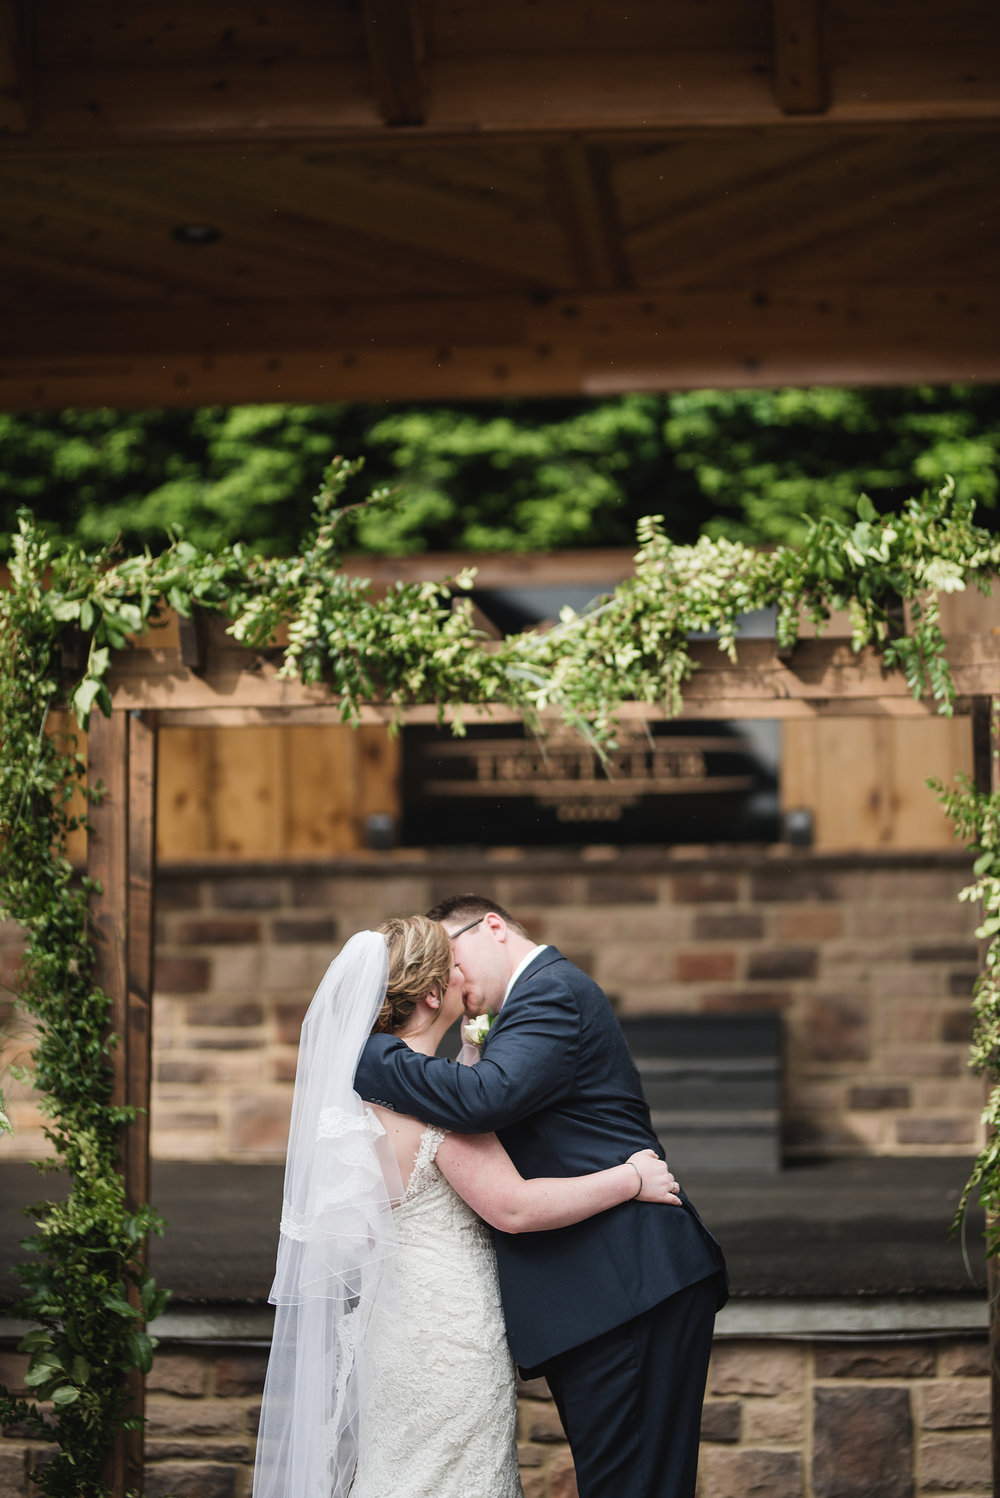 columbus wedding photographer kiss at ceremony